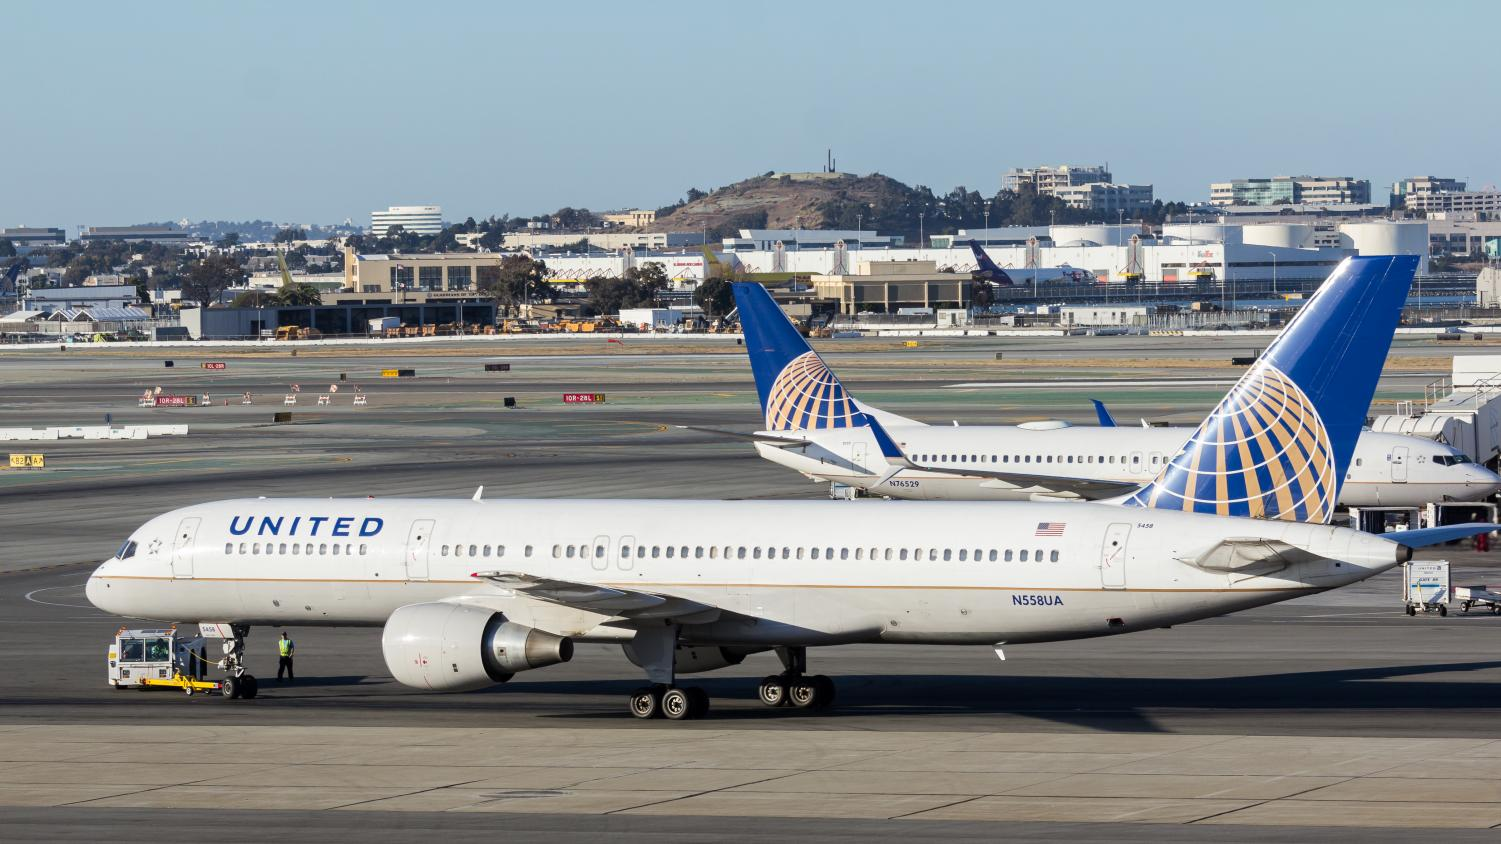 In November 2018, there were over 4.5 million total airport passengers that went in and out of SFO. According to an airport official, SFO did not experience any significant effects as a result of the government shutdown.